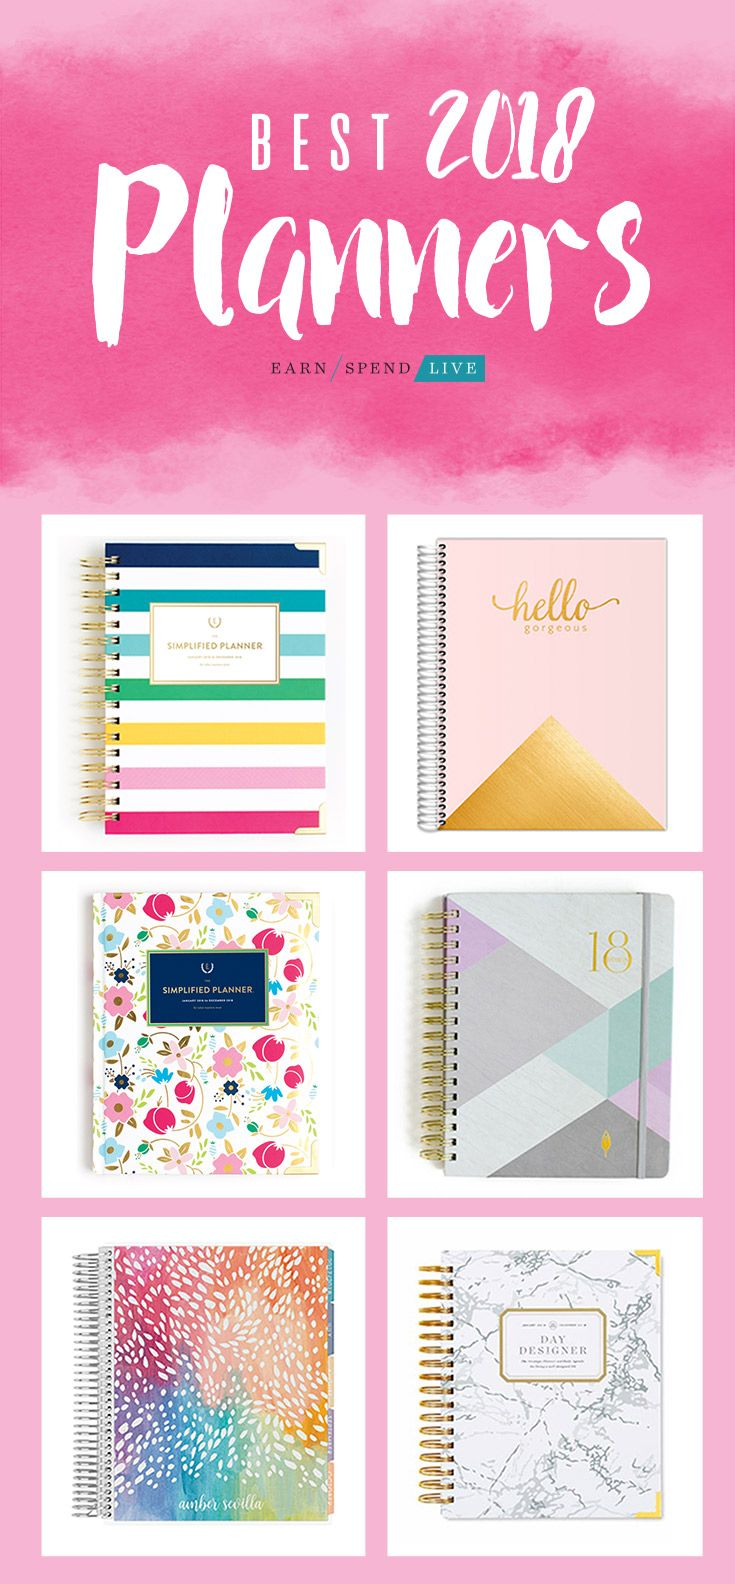 I need a 2018 planner